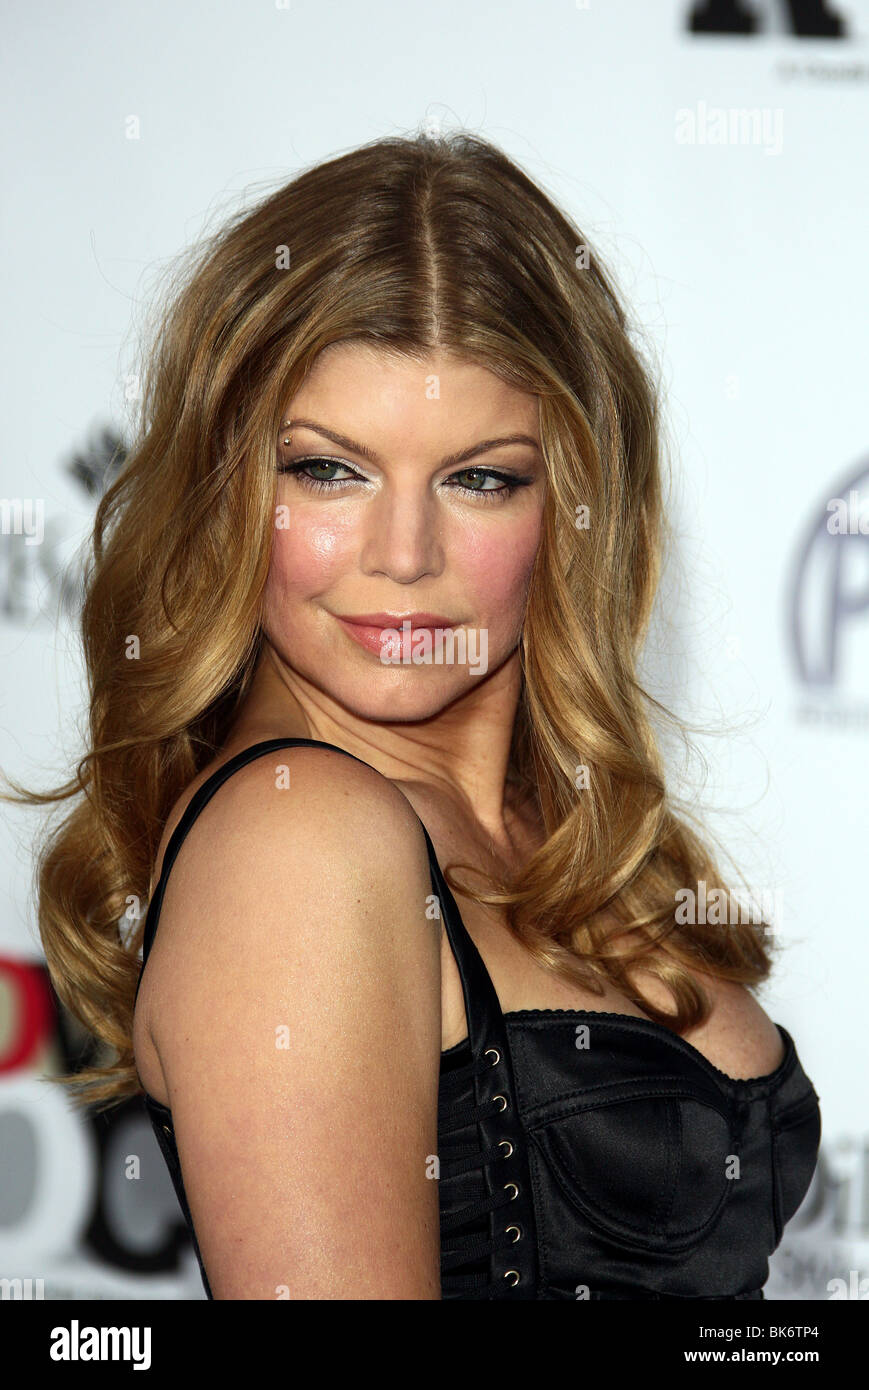 FERGIE MOVIES ROCK A CELEBRATION OF MUSIC IN FILM KODAK THEATRE HOLLYWOOD LOS ANGELES USA 03 December 2007 - Stock Image